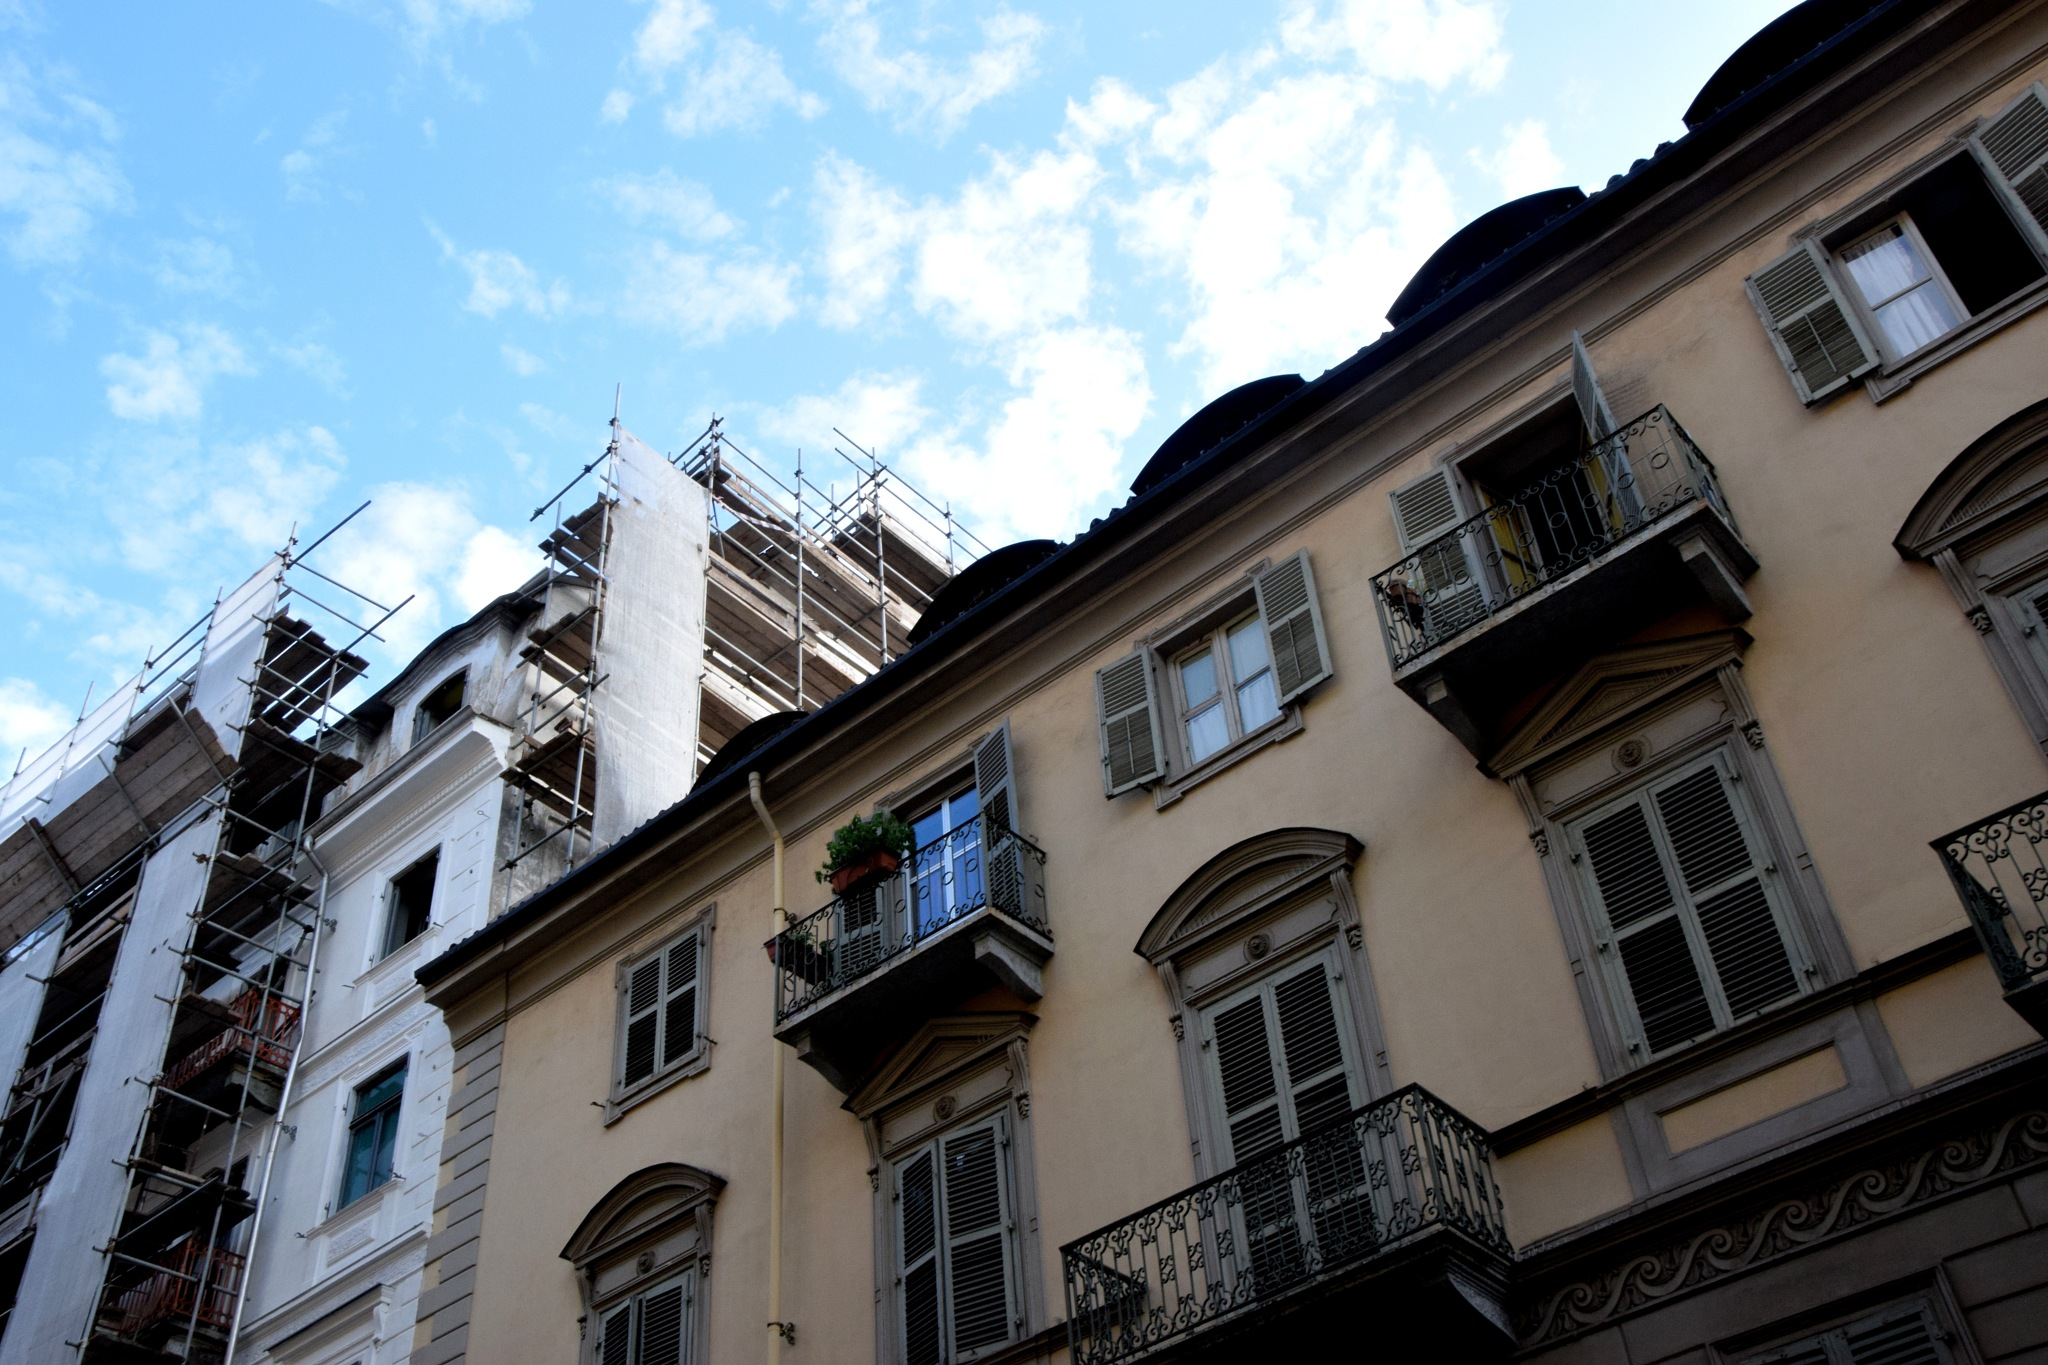 Sky, scaffolding and facade (Building Sites in Torino/10) by clairettegardner